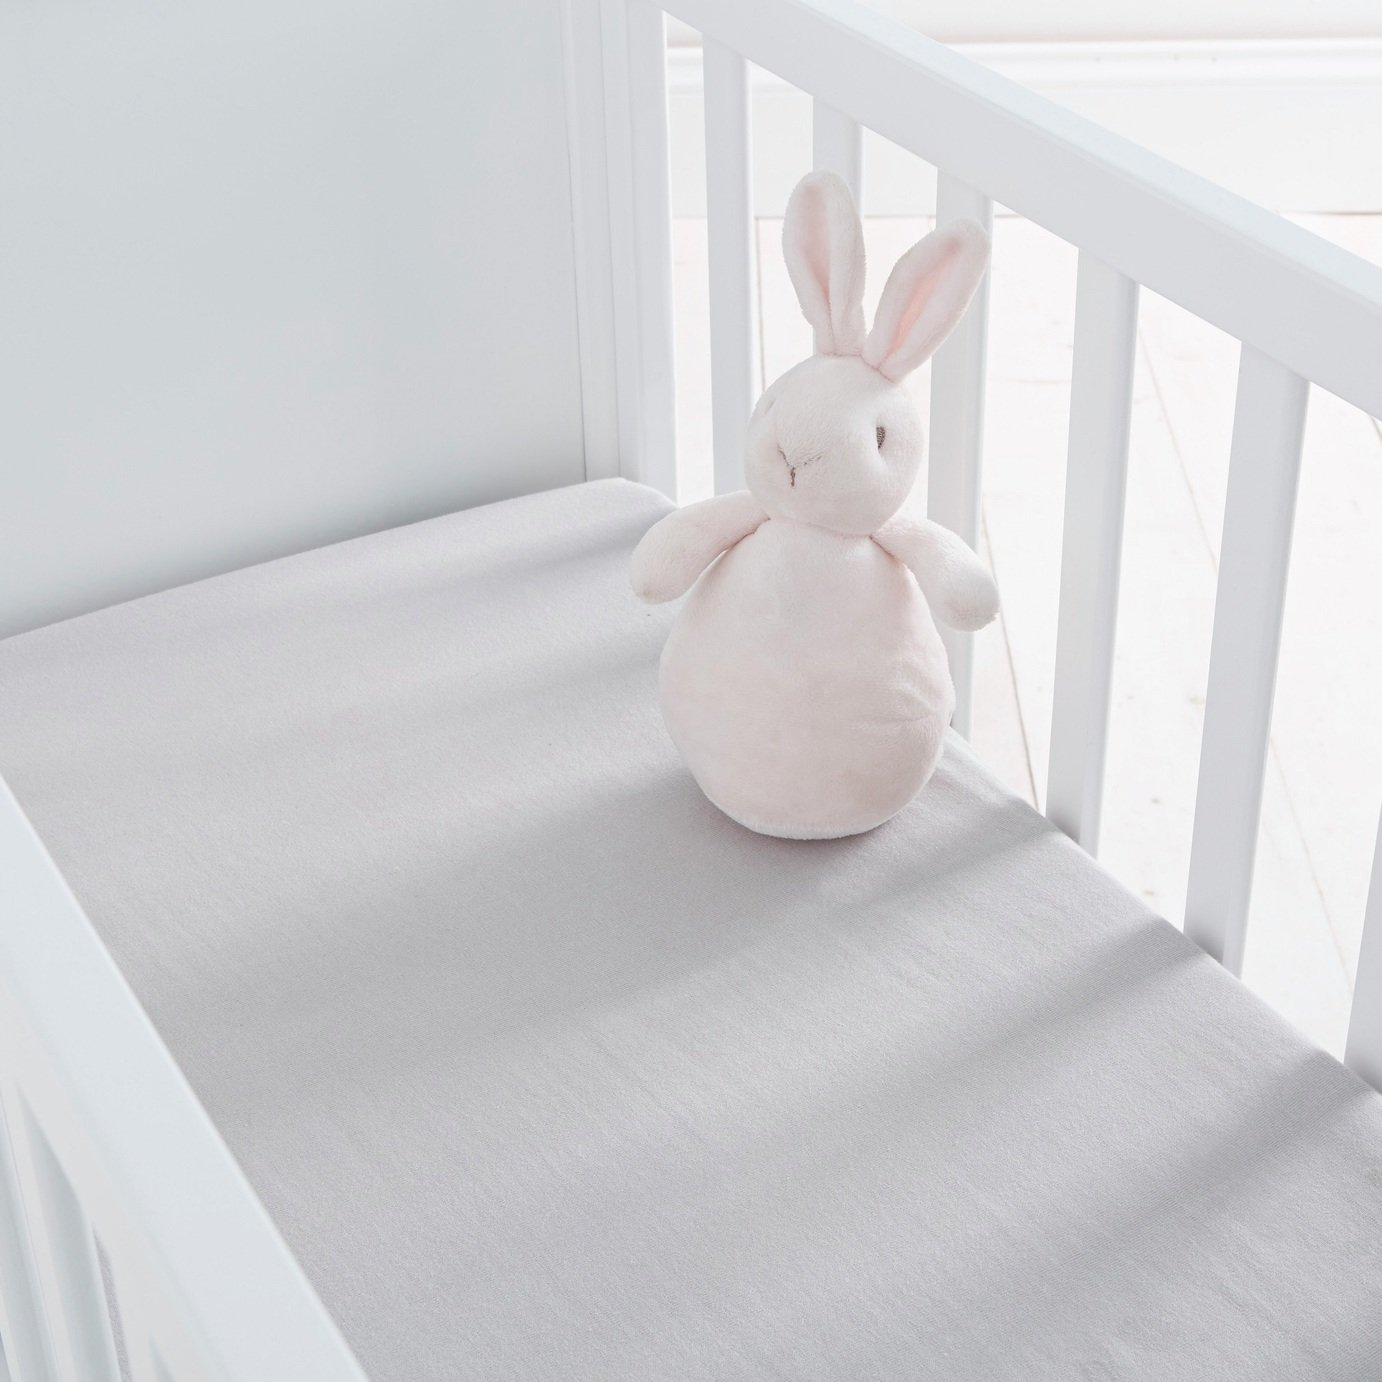 Silentnight Fitted Crib Sheet 2 Pack - Grey